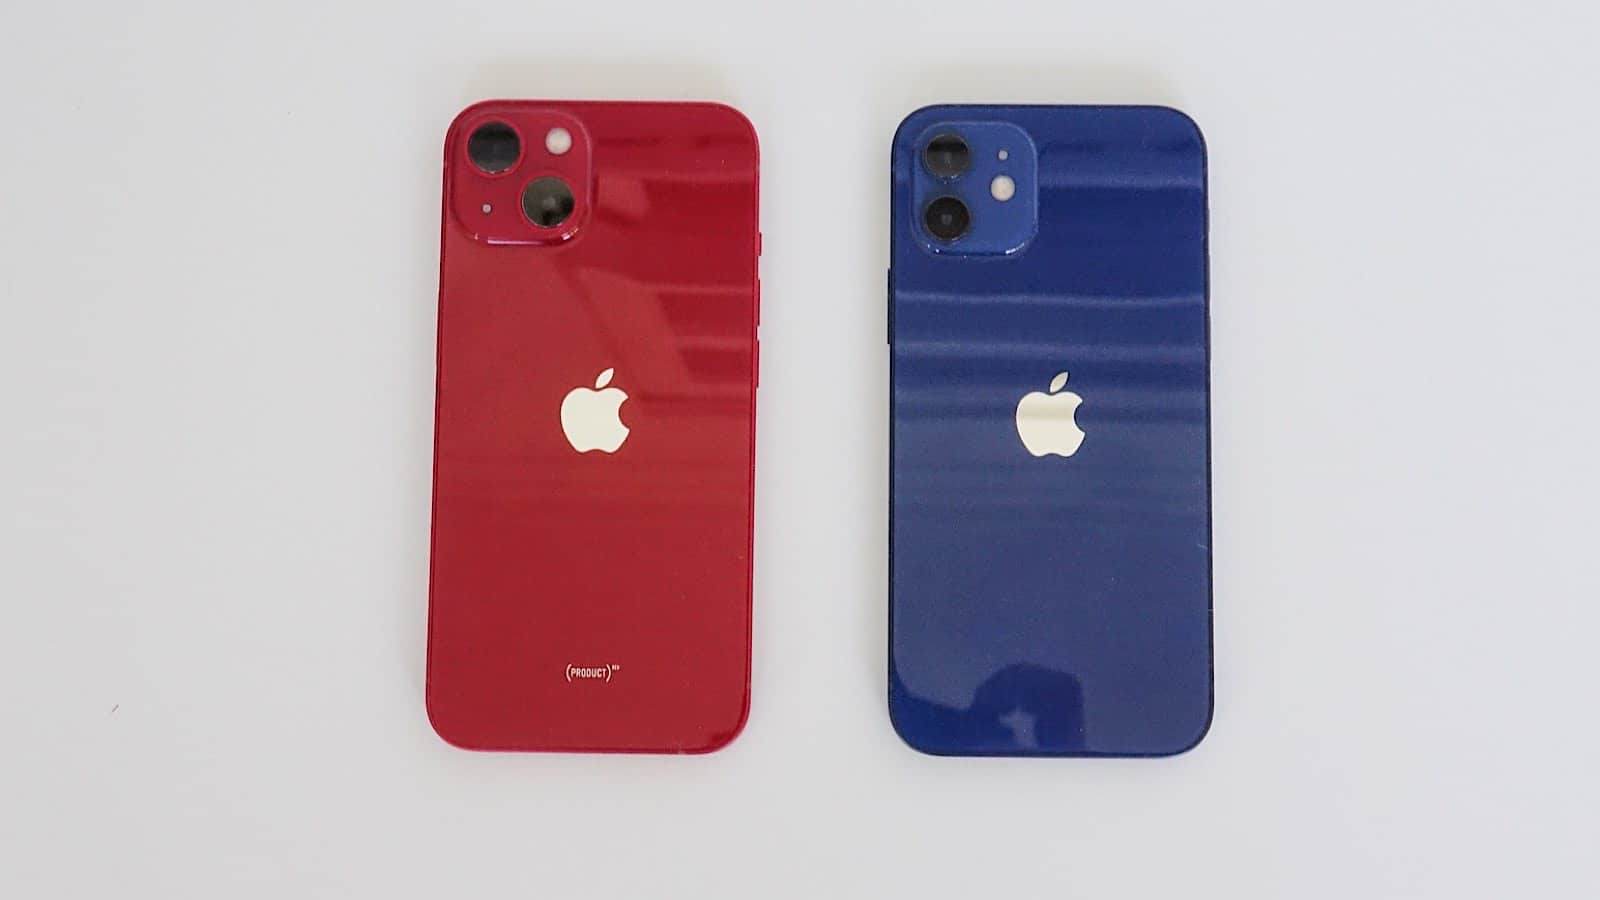 The difference in design is visible when comparing the iPhone 13 (left) to the iPhone 12 (right).